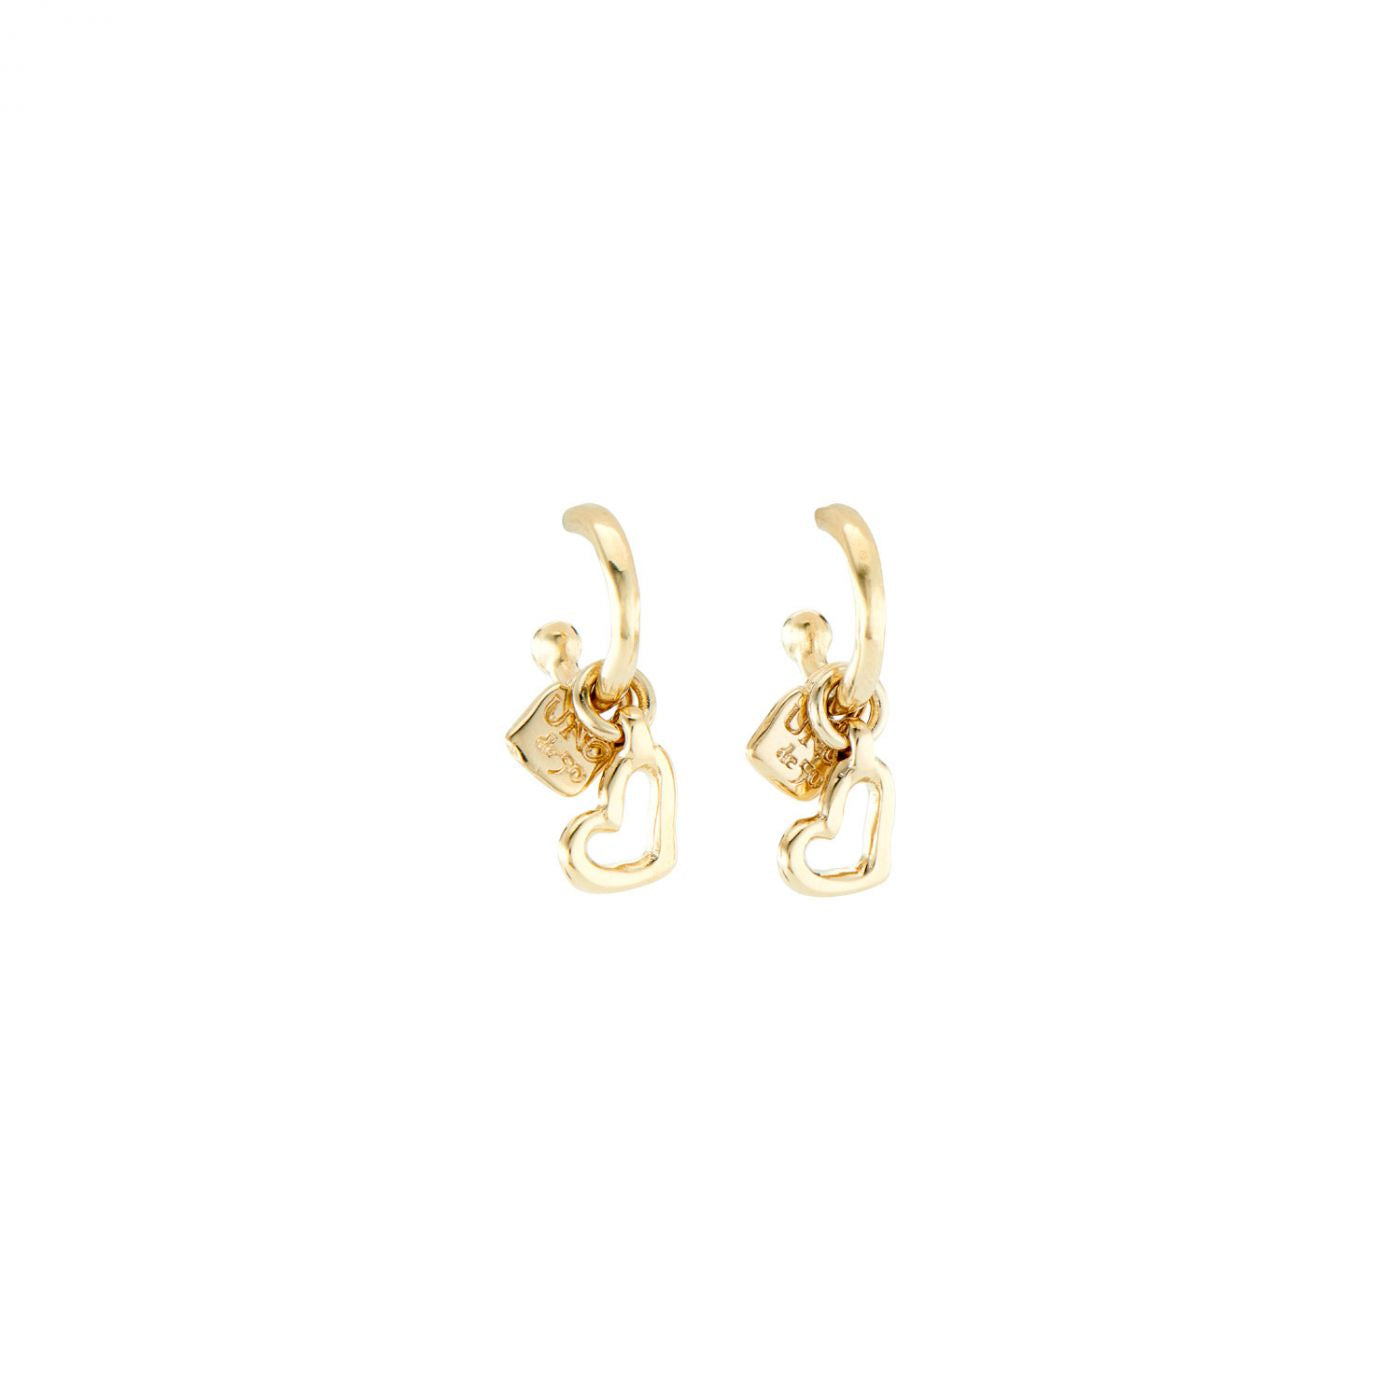 Lucky Charms Earrings in Gold